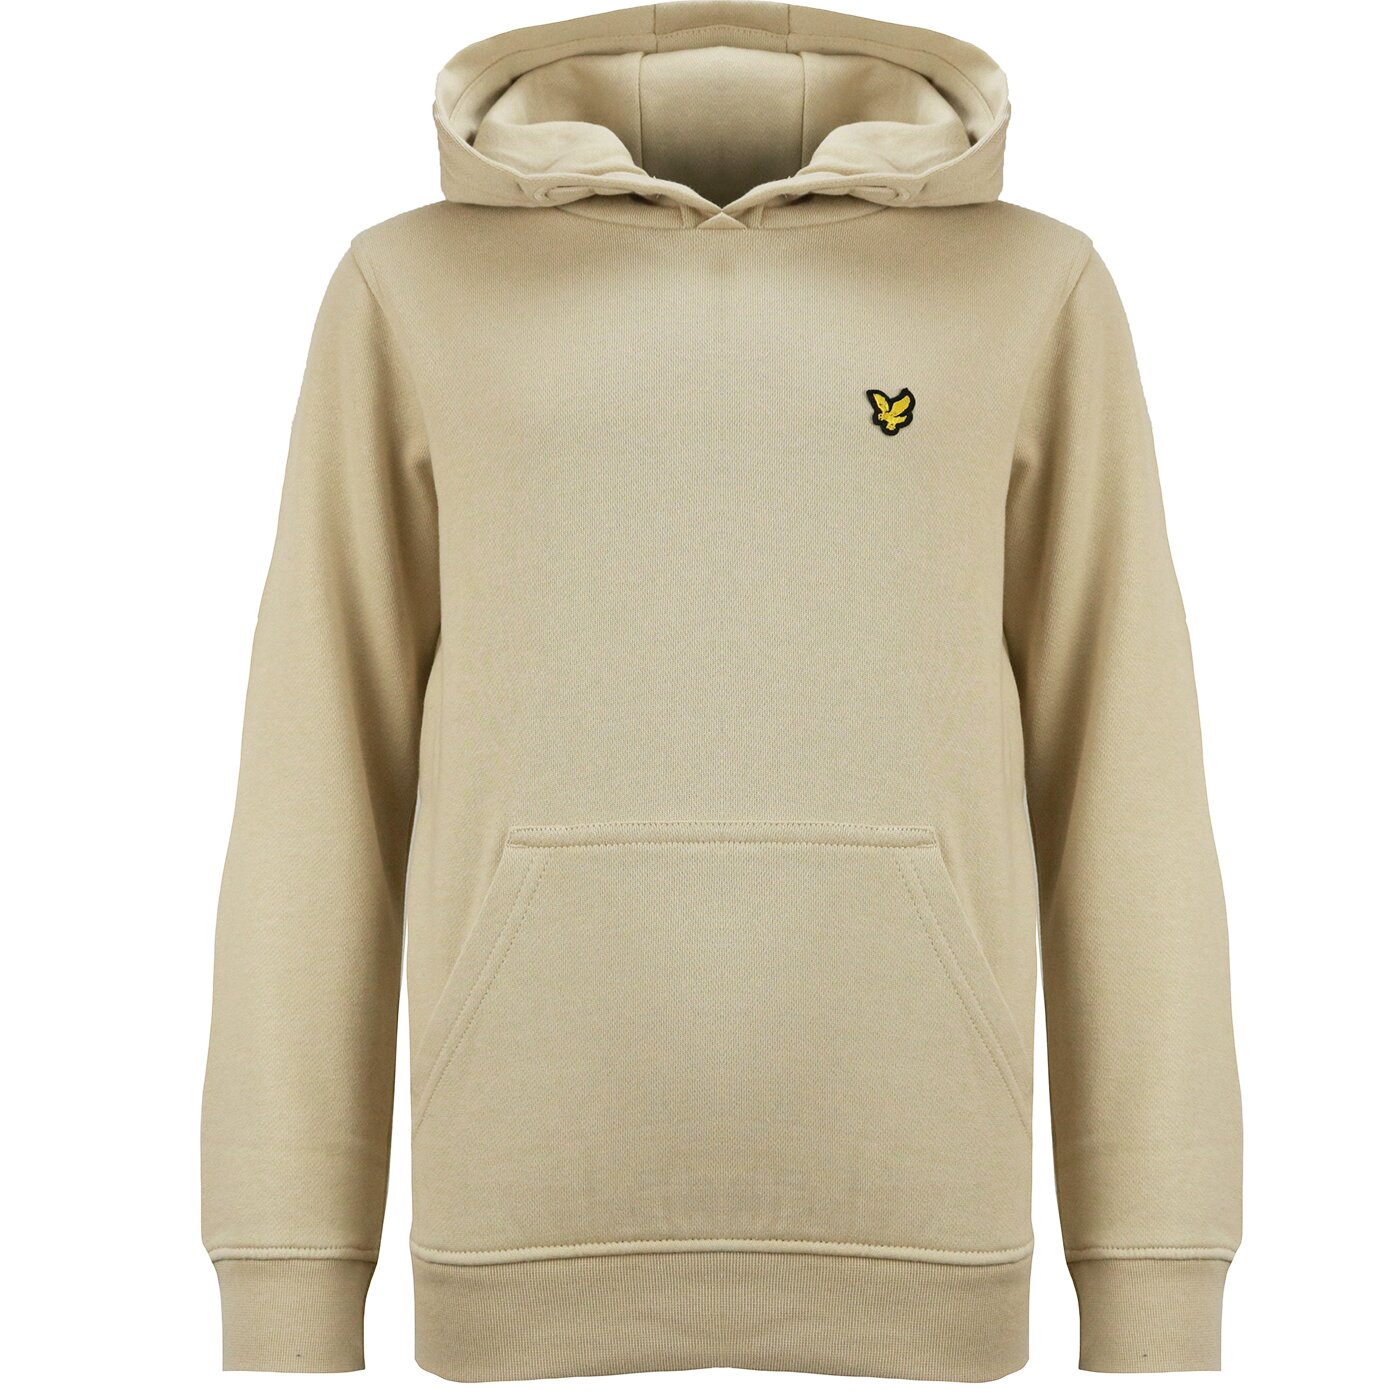 Lyle & Scott hoody Cement LSC0475